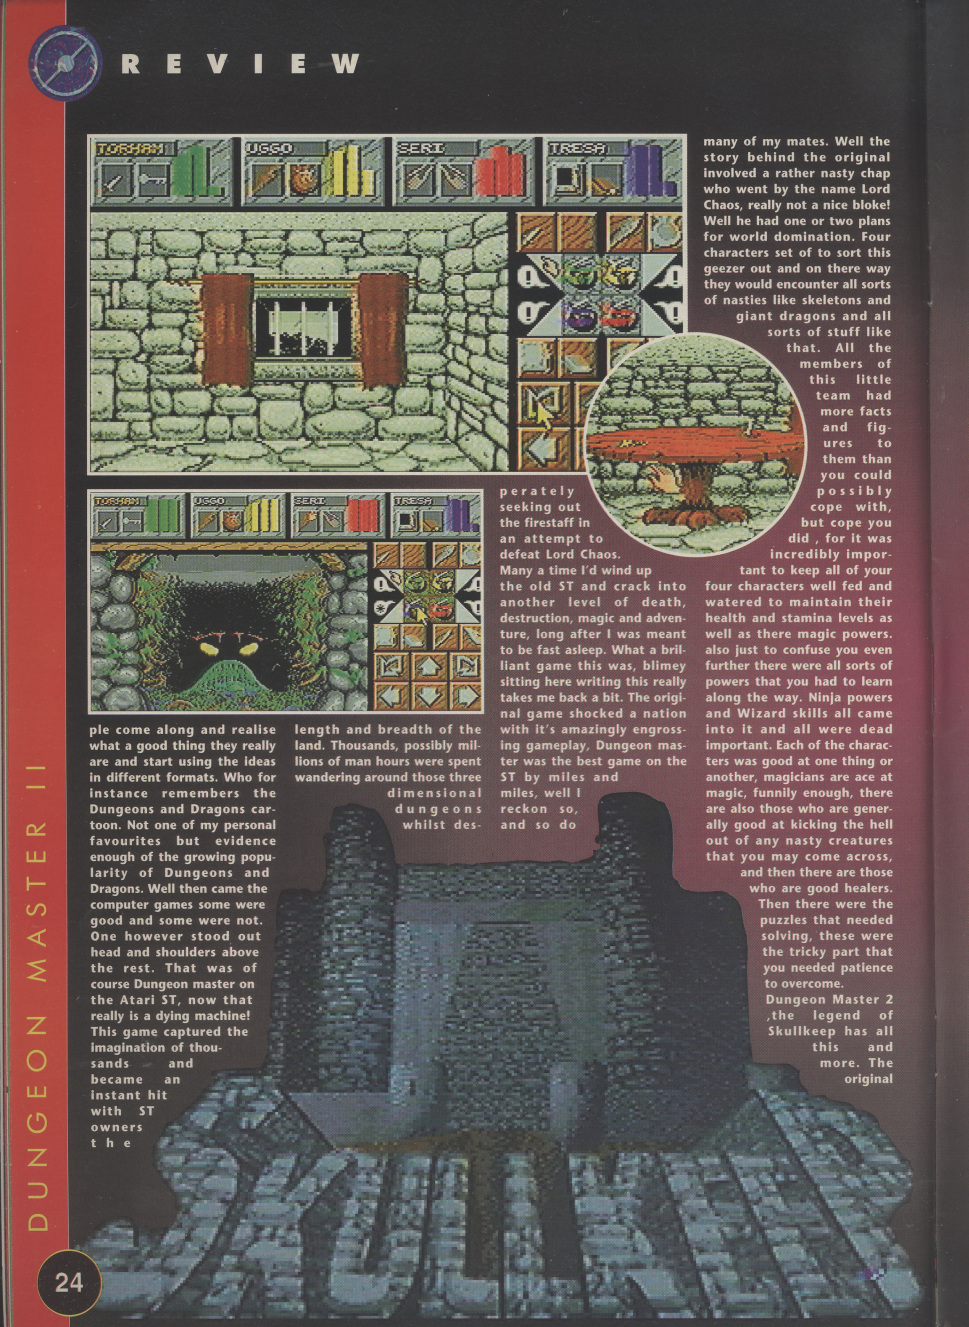 Dungeon Master II for Amiga Review published in British magazine 'The One Amiga', Issue #85 November 1995, Page 24